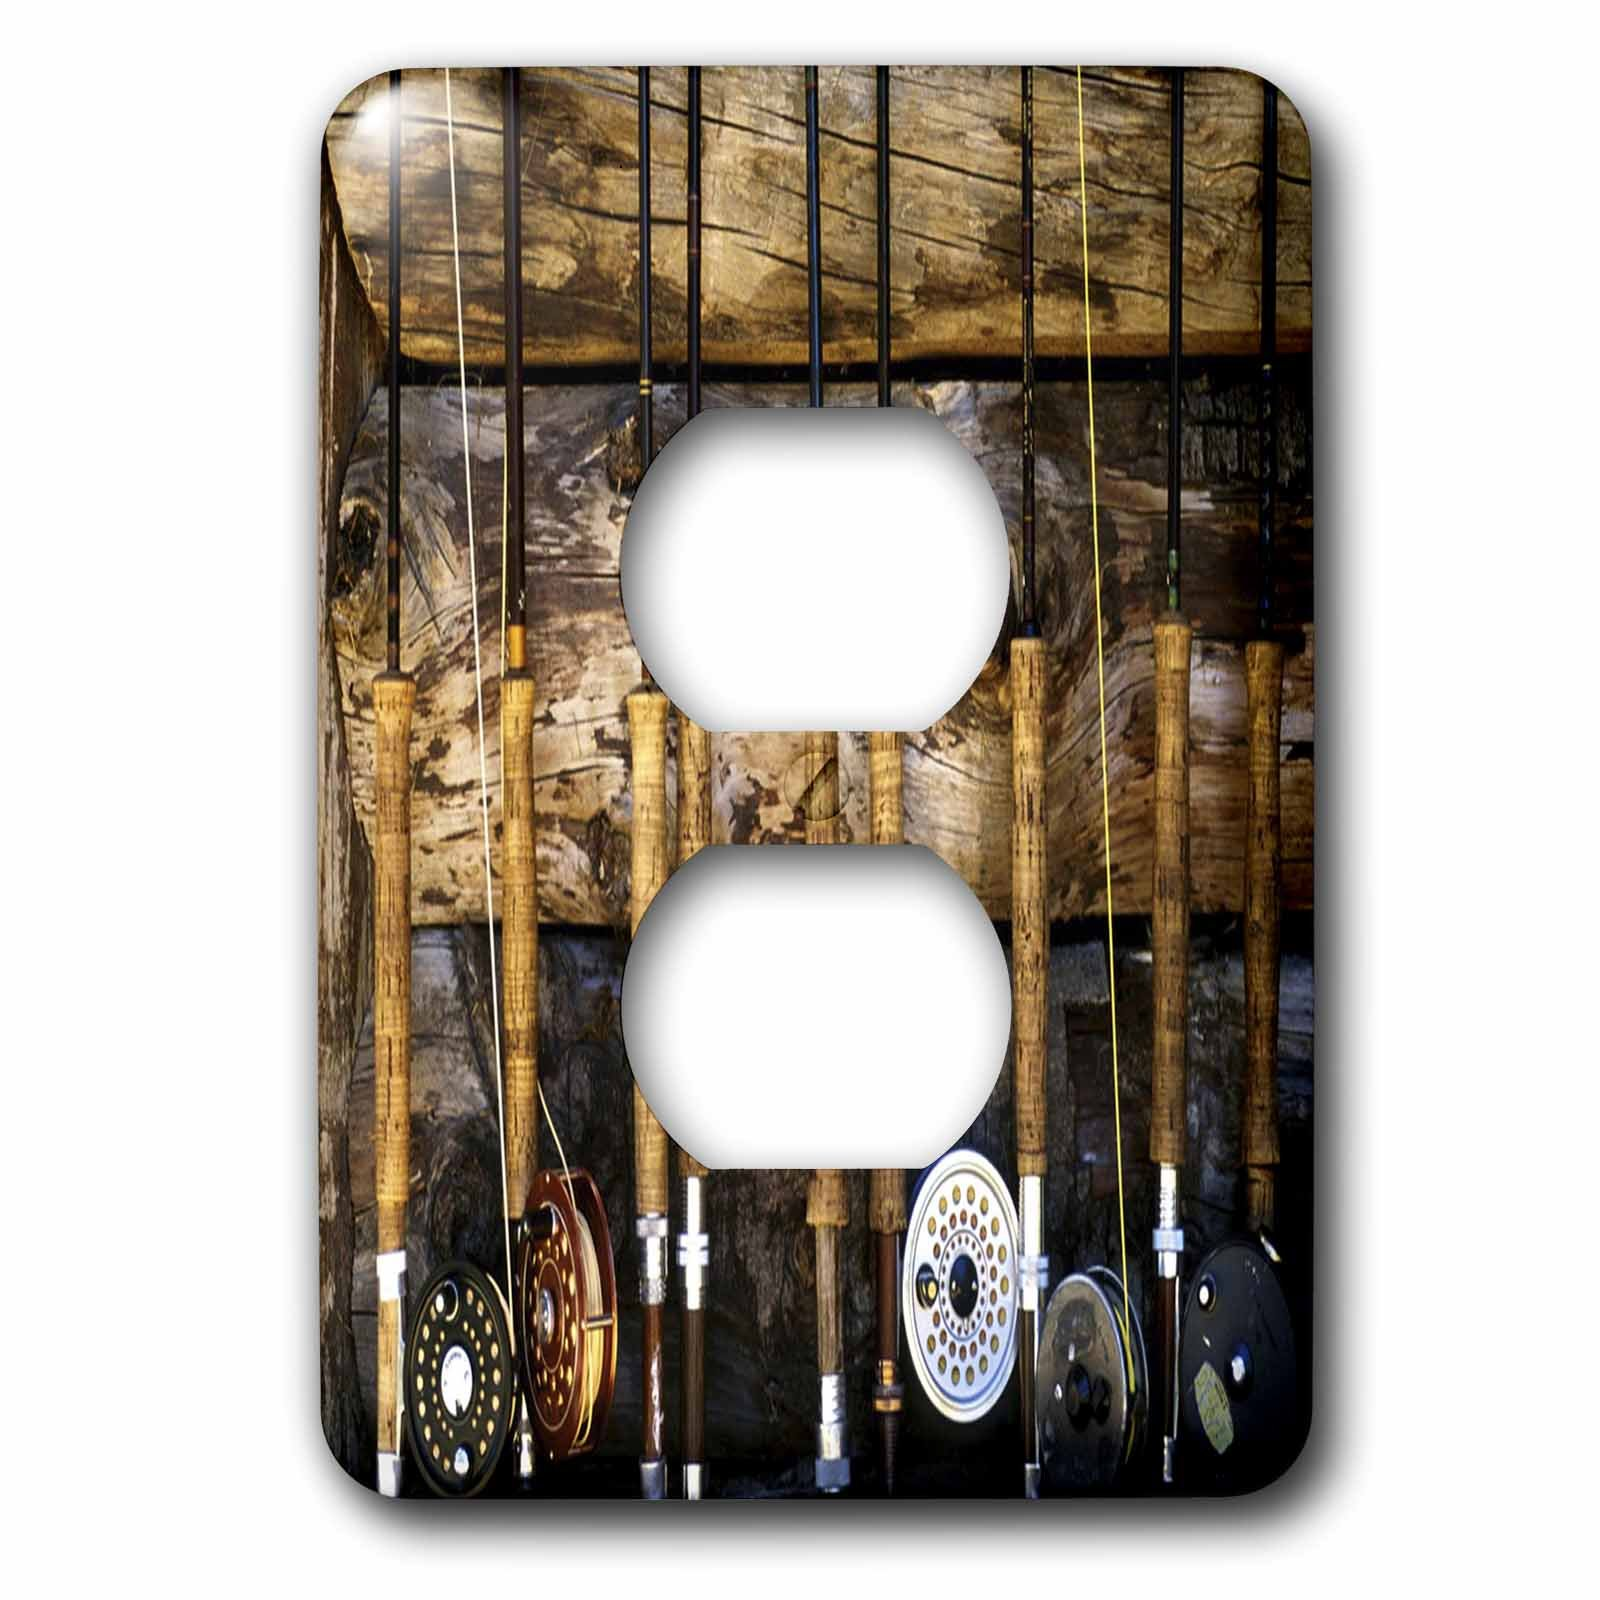 3dRose LLC lsp_60625_6 Country Fishing 2 Plug Outlet Cover by 3dRose (Image #1)